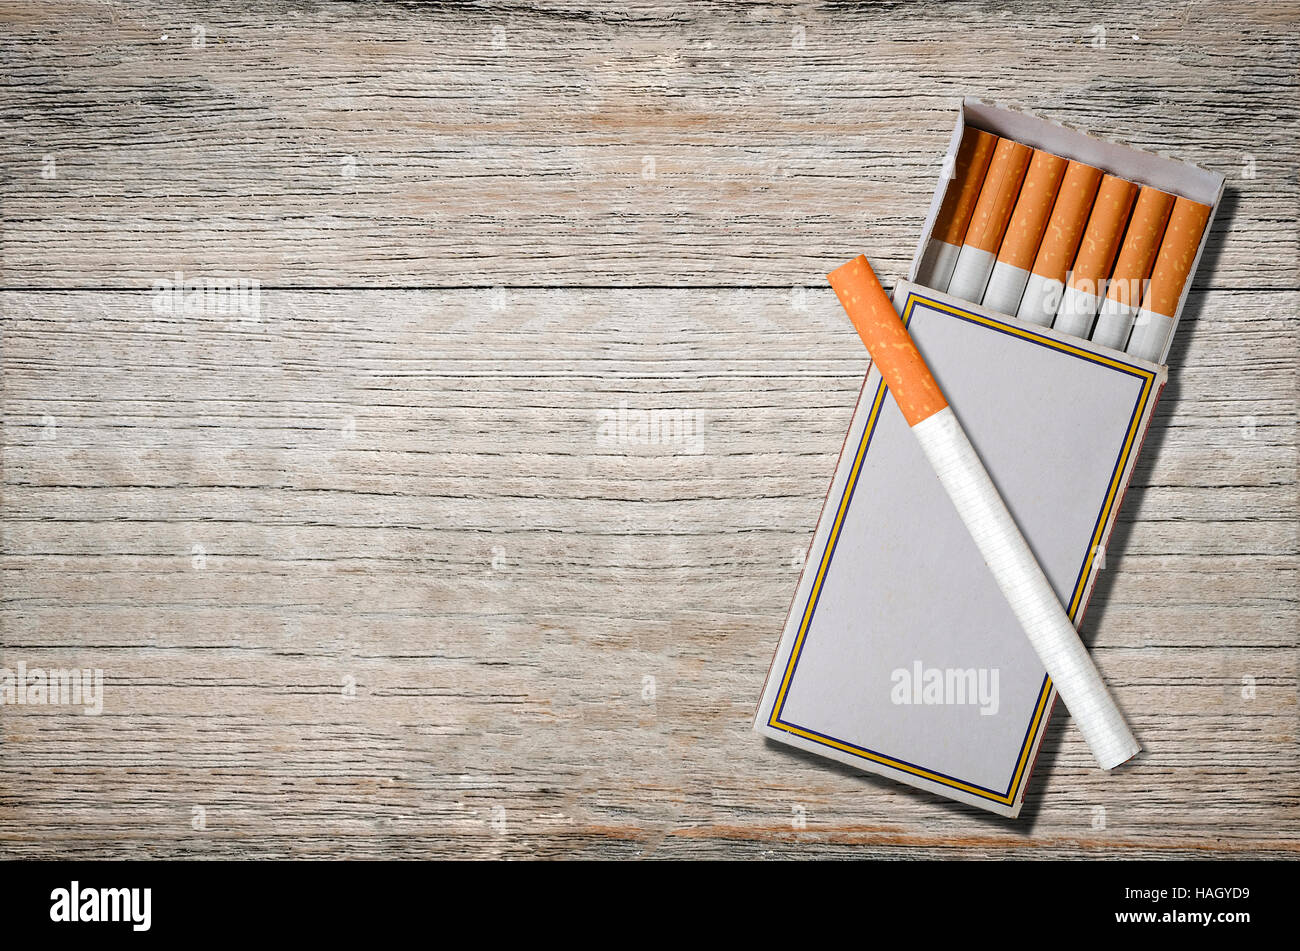 cigarettes in match box on wooden background. - Stock Image